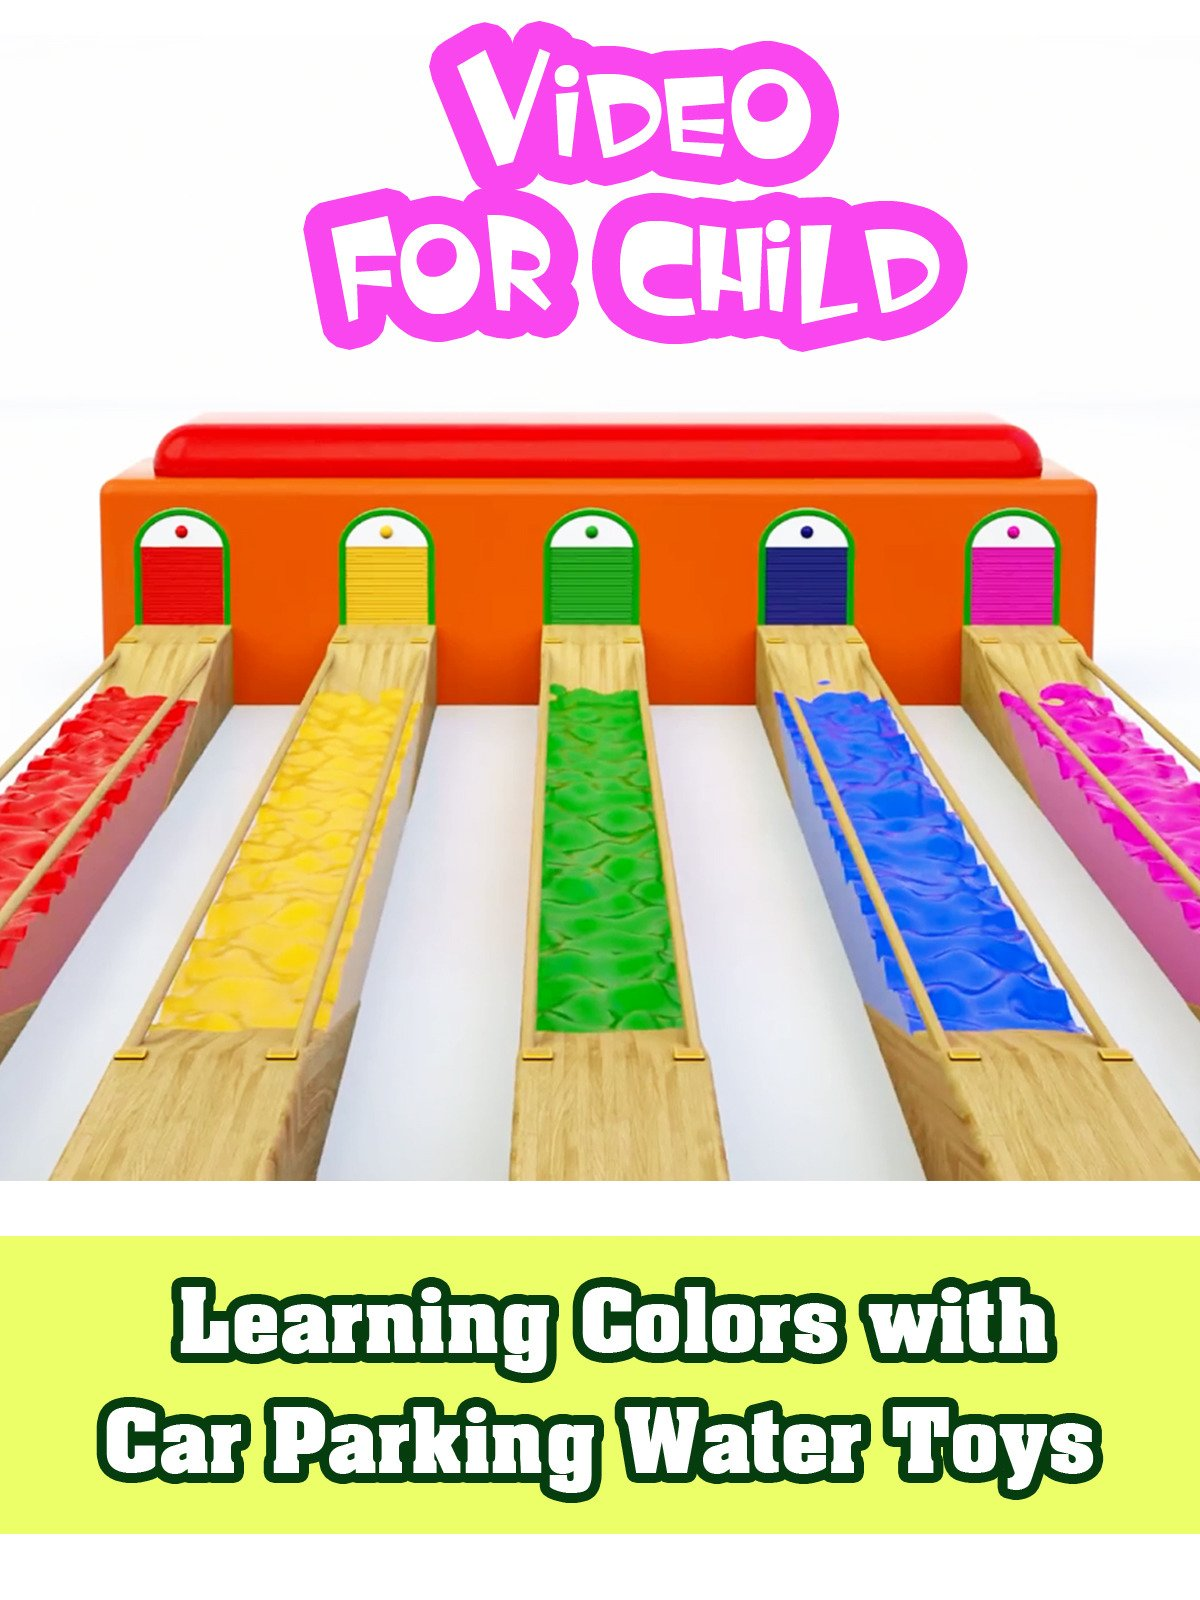 Learning Colors with Car Parking Water Toys